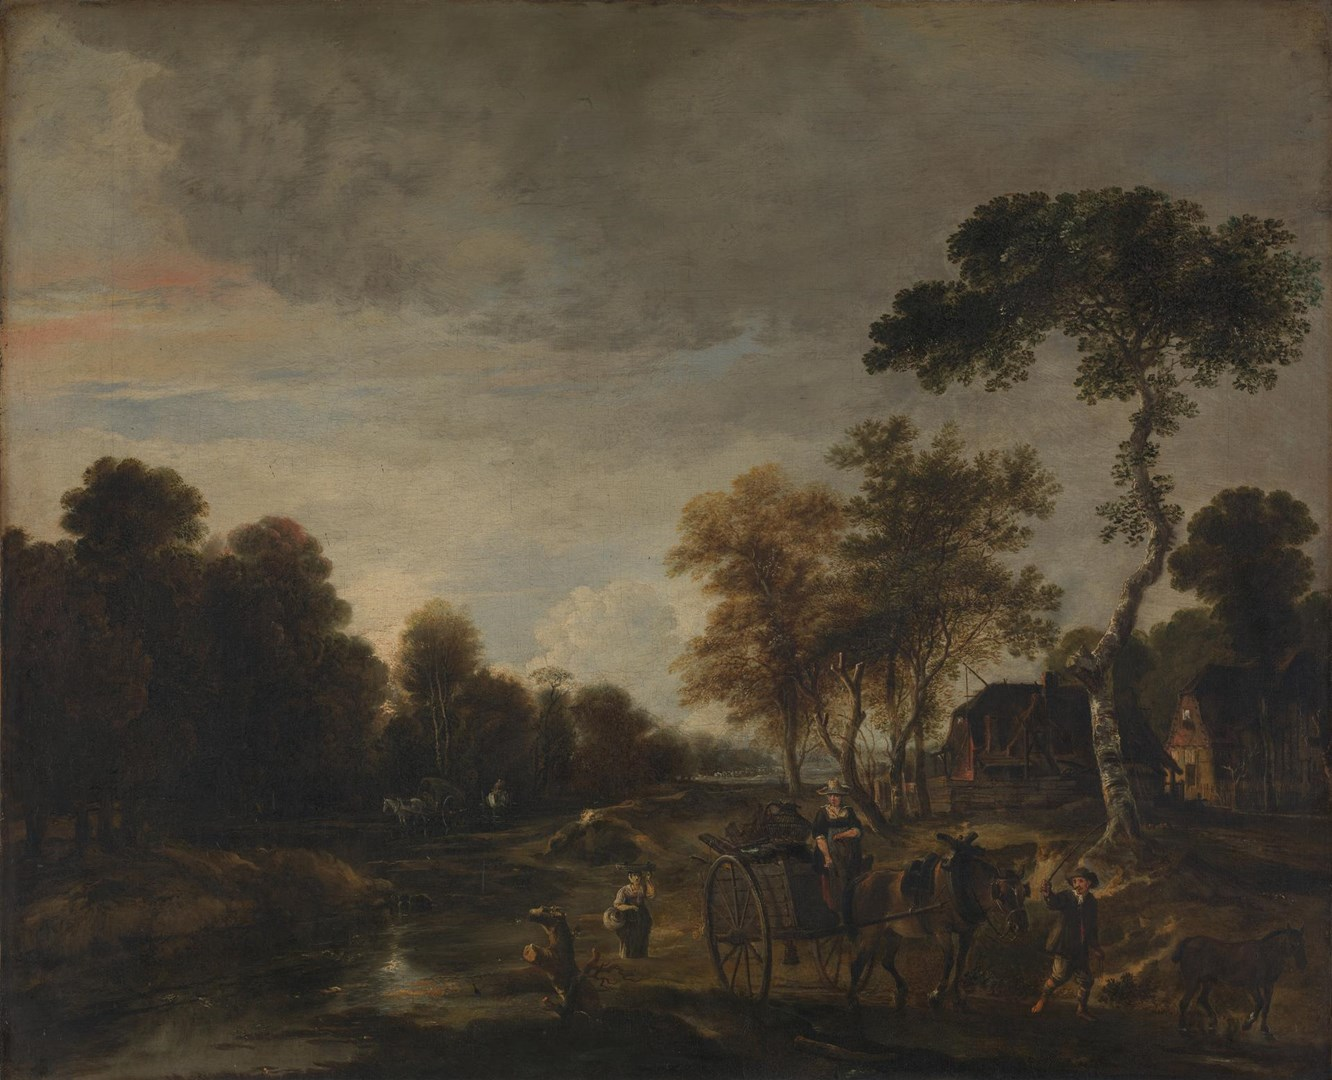 An Evening Landscape with a Horse and Cart by a Stream by Aert van der Neer